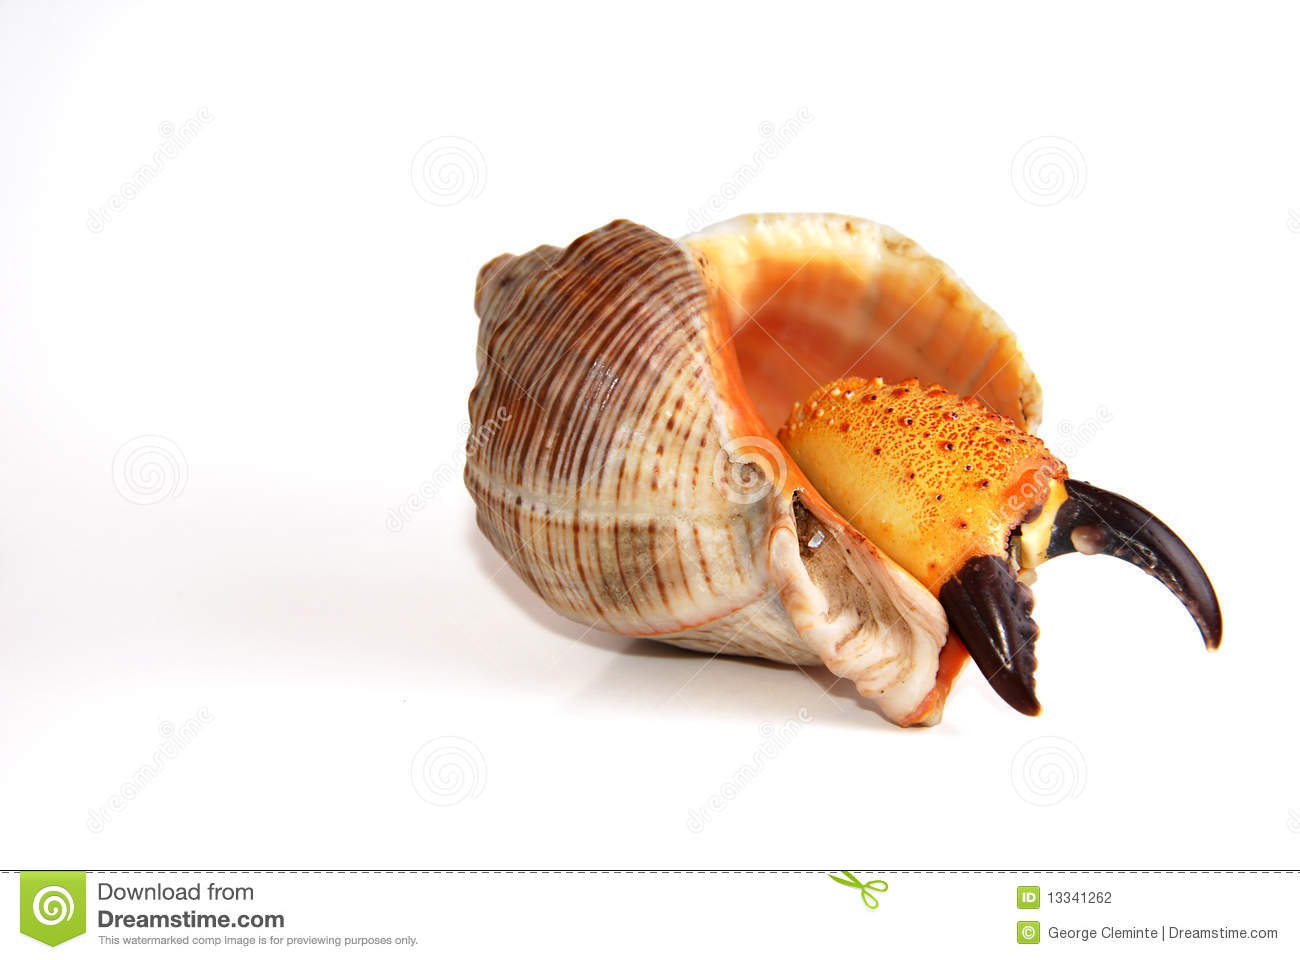 how to open a crab shell